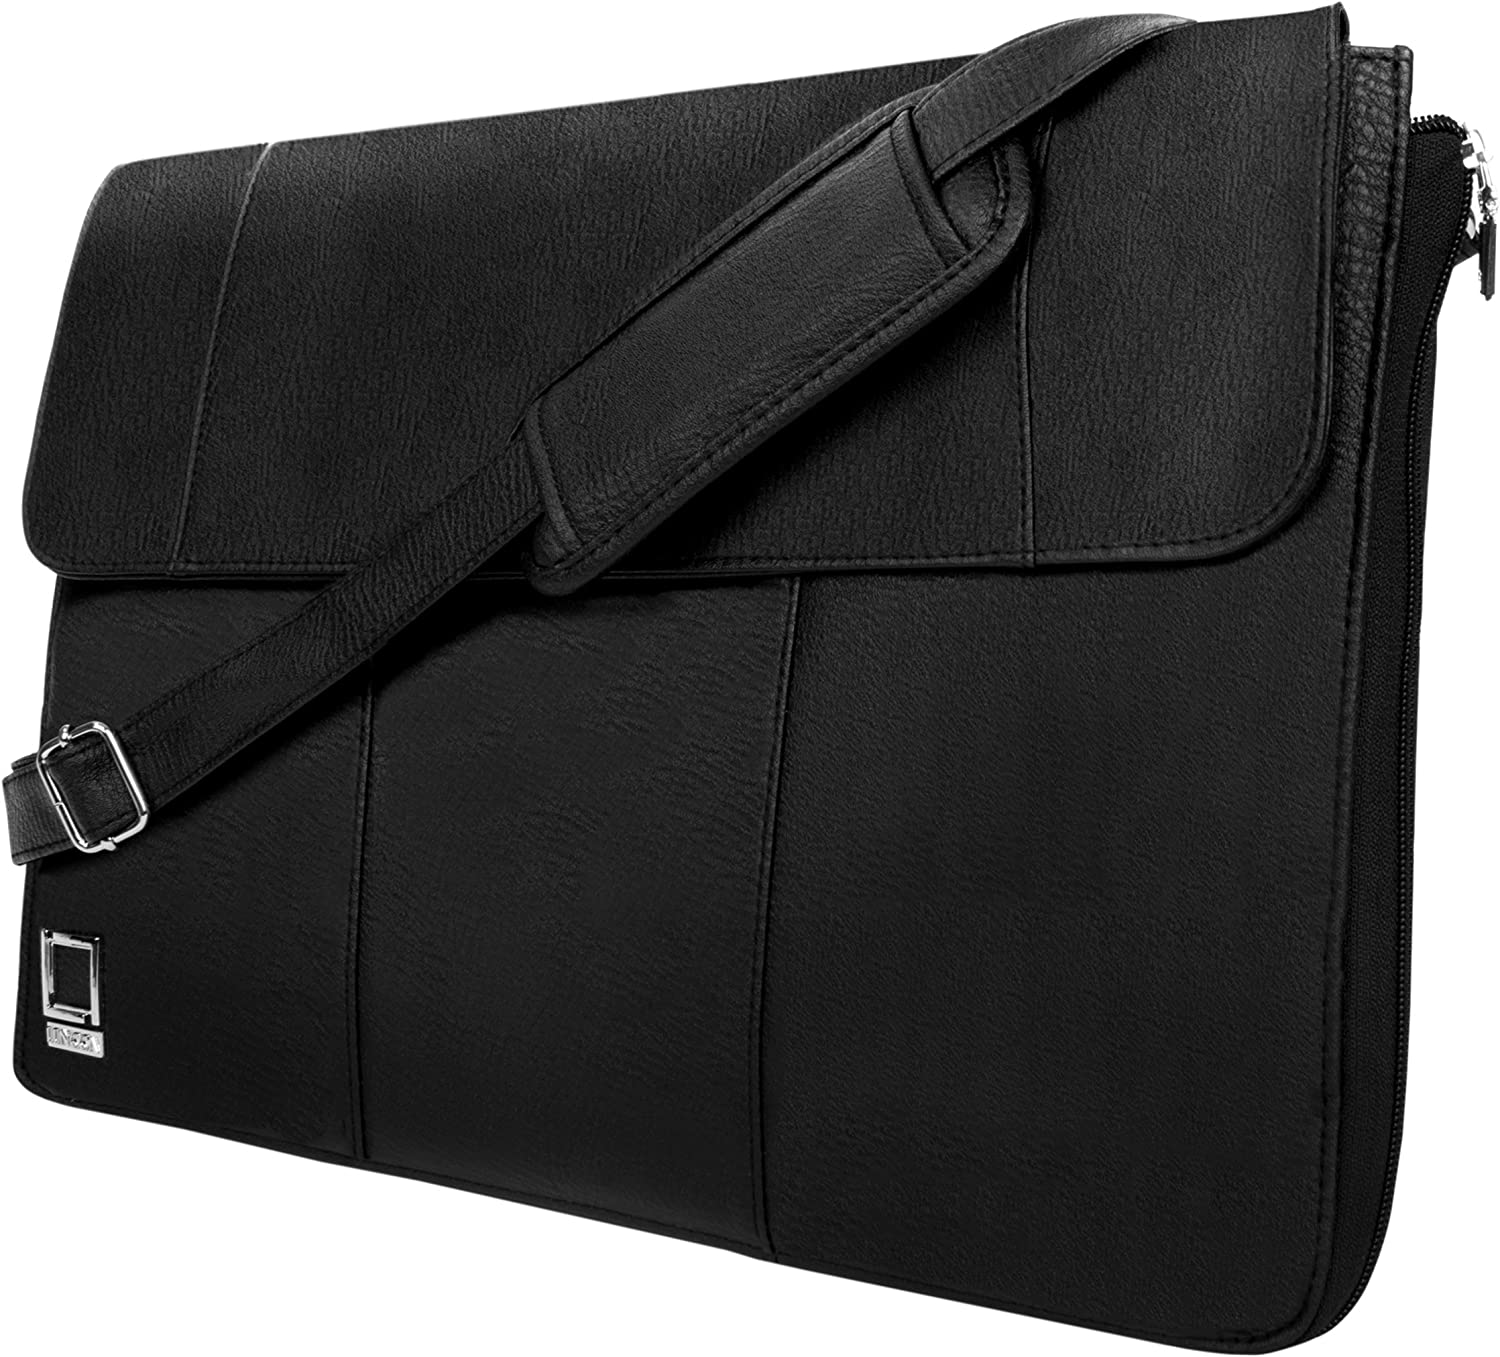 "Lencca Axis Hybrid Laptop Portfolio Sling Bag for HP EliteBook/ProBook/Pavilion/Spectre/Stream/Envy/Laptops 11""-13inch"